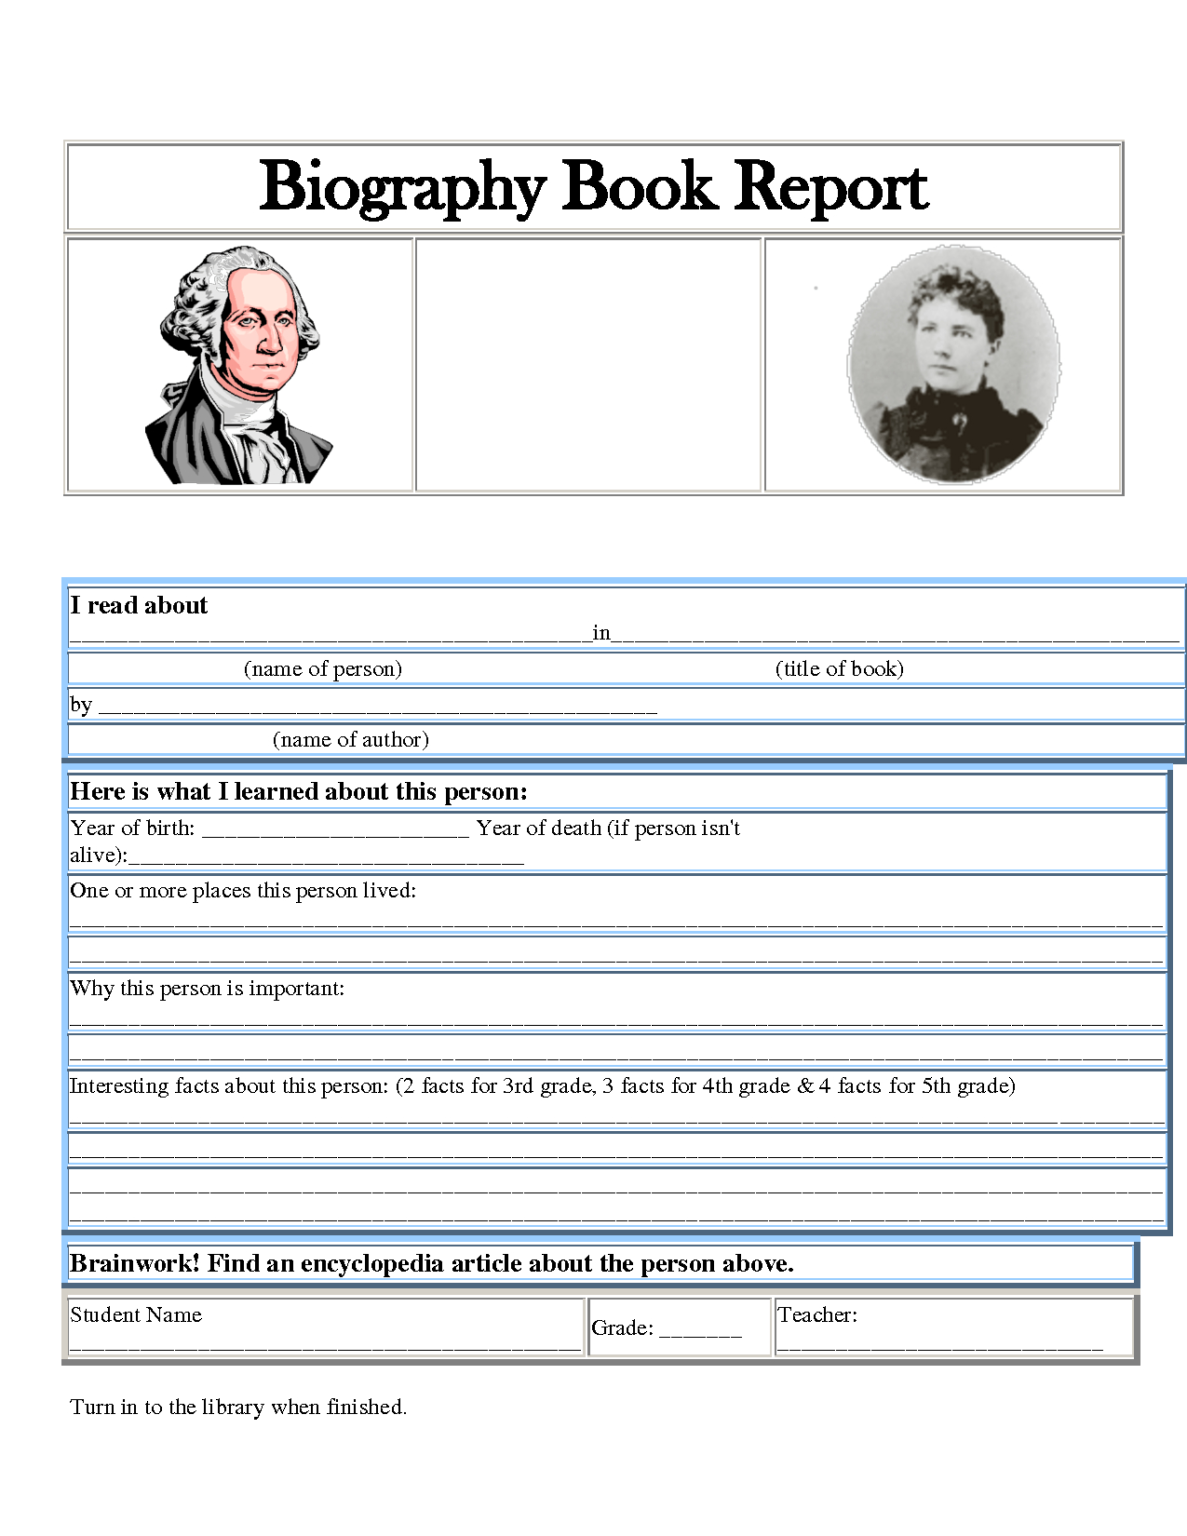 5Th Grade Dol Worksheet | Printable Worksheets And pertaining to Biography Book Report Template – Sample Design Templates